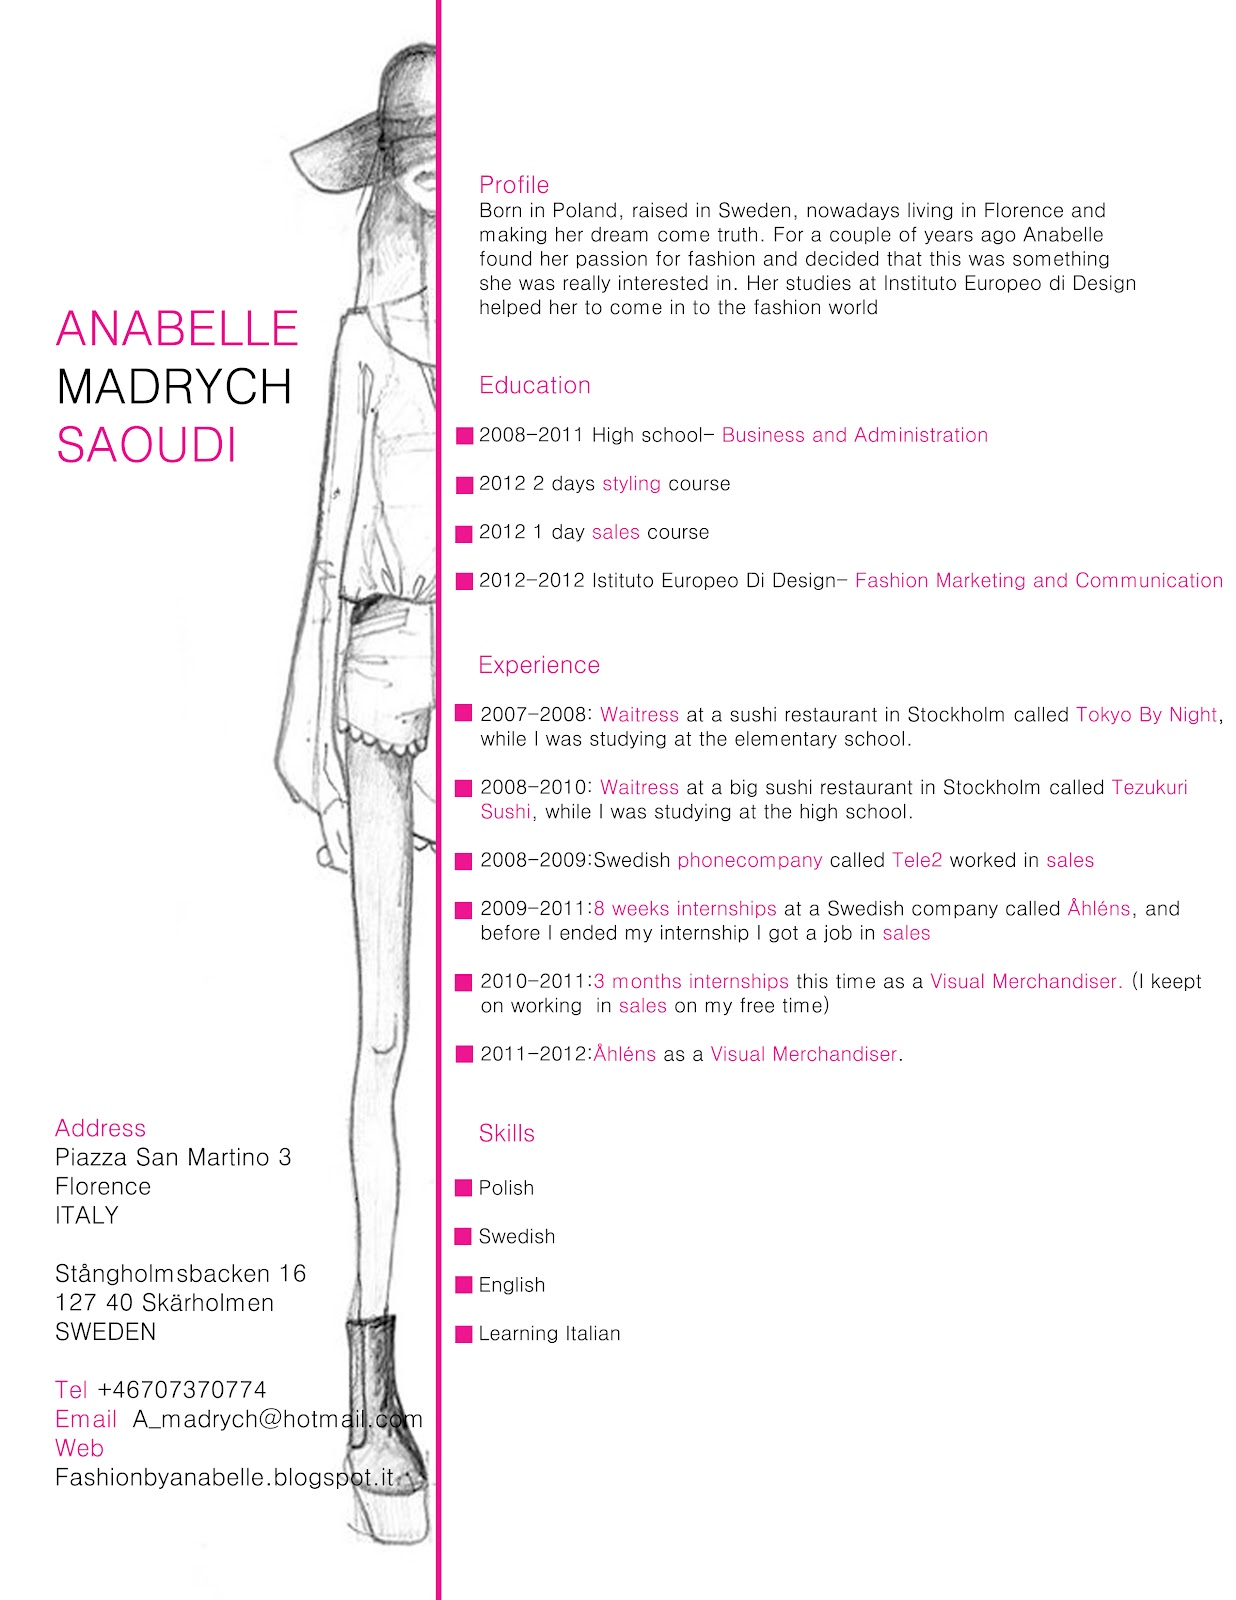 Creative Fashion Designer Resume Pdf Free Downlaod Resume Fashion Designer Template Sample Graphic Design Resumeresume Objective Example Resume Fashion Designer Resume Samples Fashion Designer Resume Sample Fresher College Professor Resume Sample Misc